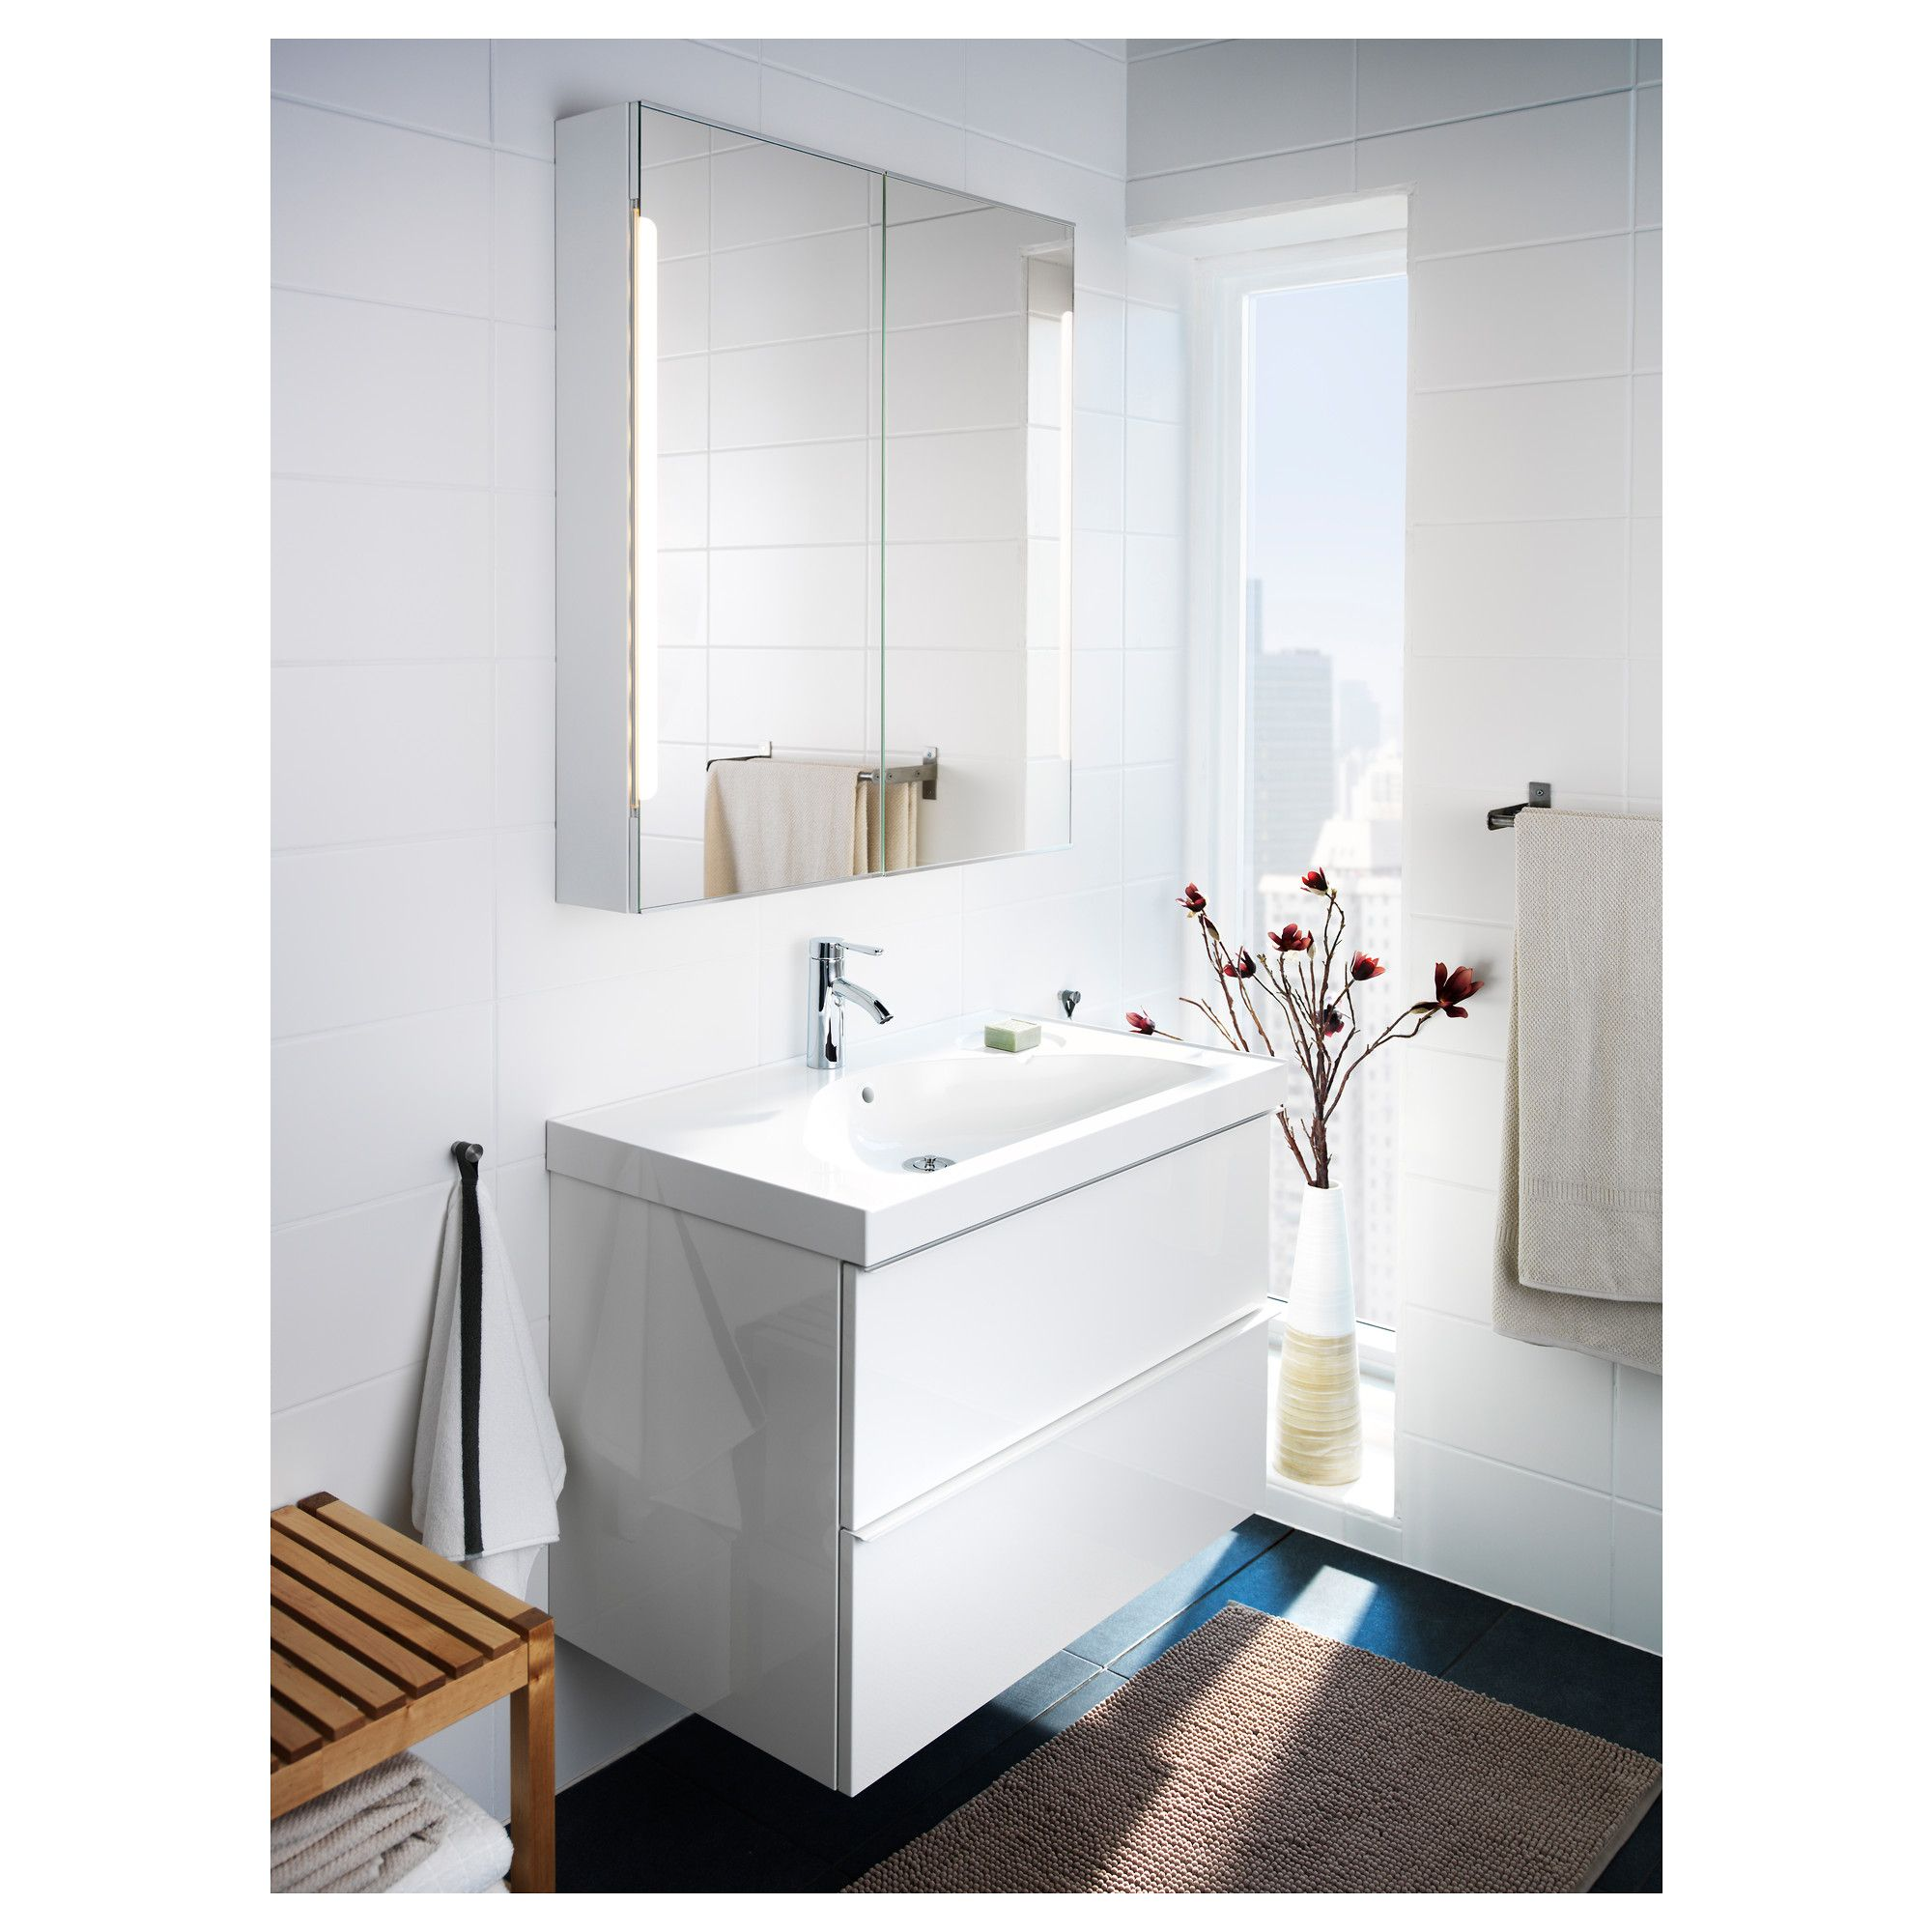 Furniture Home Furnishings Find Your Inspiration In 2021 Ikea Bathroom Mirror Bathroom Cabinets Ikea Bathroom Mirror Cabinet